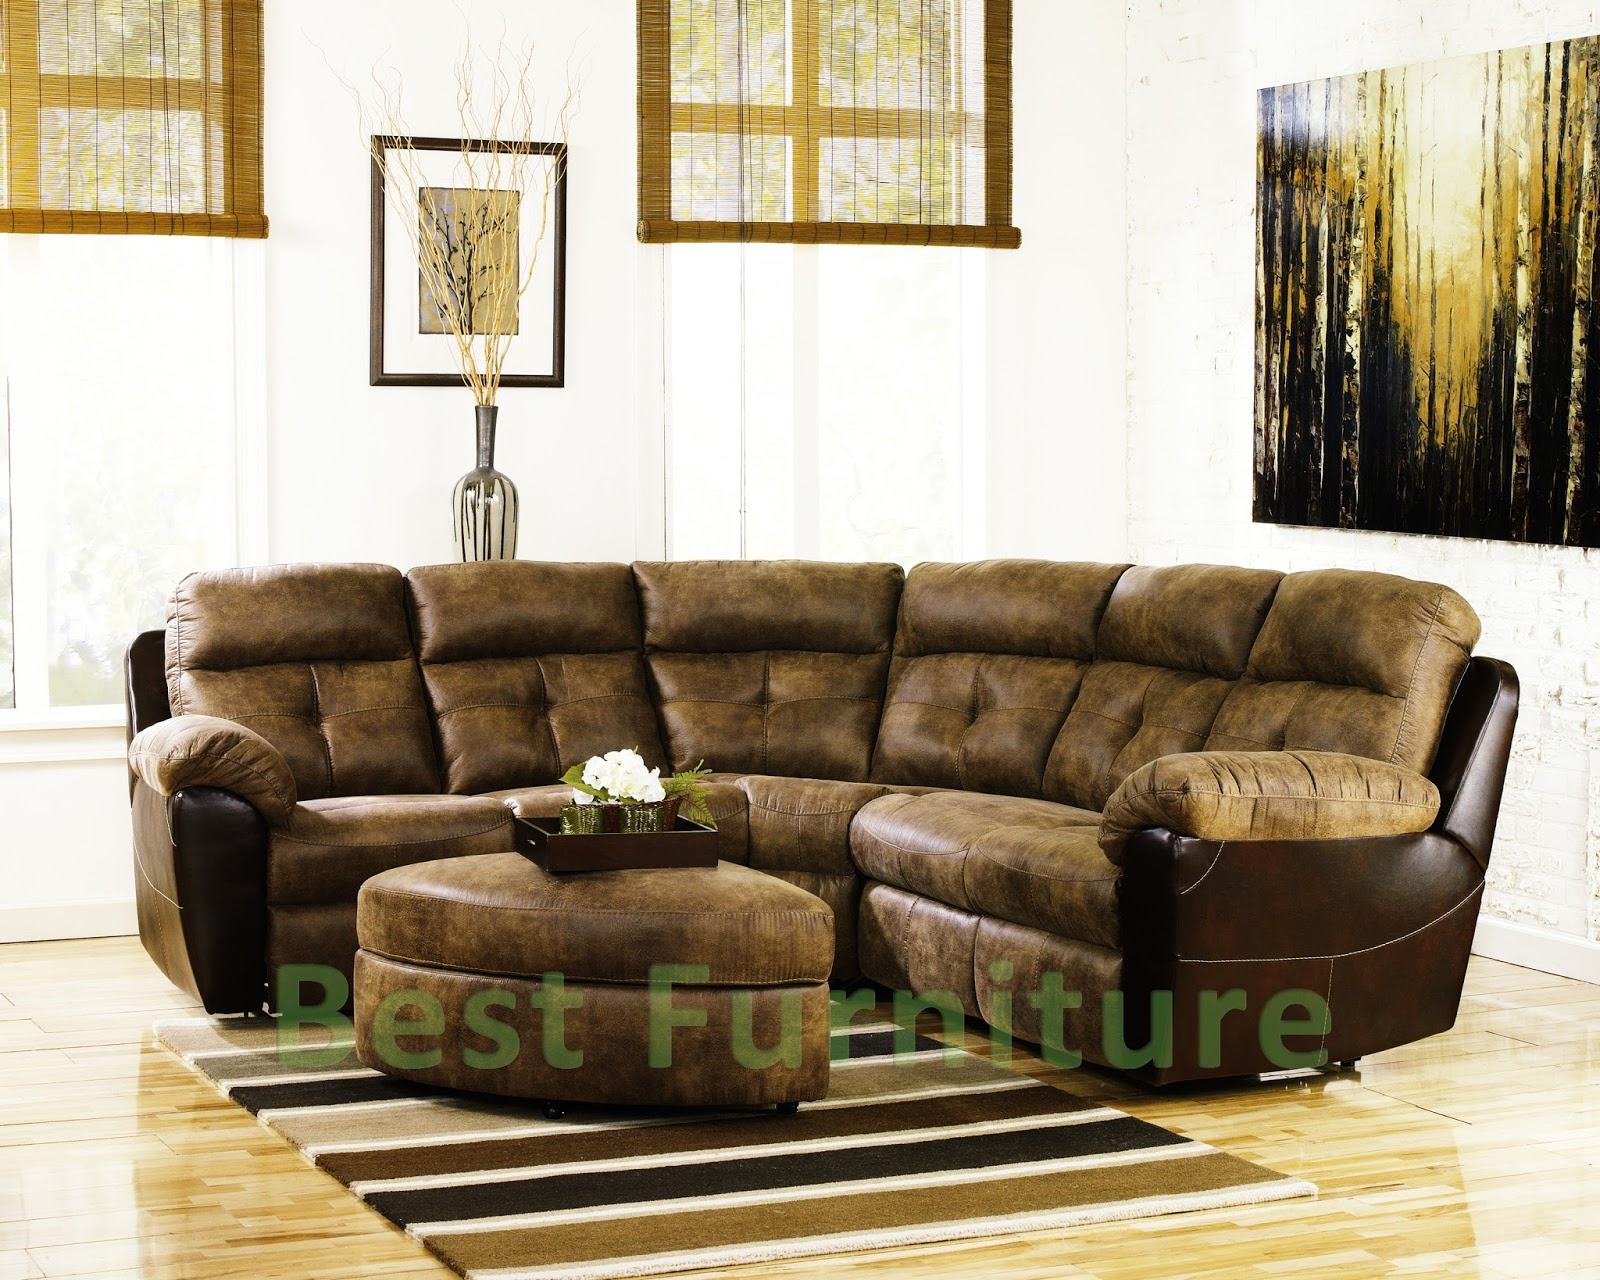 Alessia leather sectional sofa 2 piece chaise best furniture for Alessia leather chaise